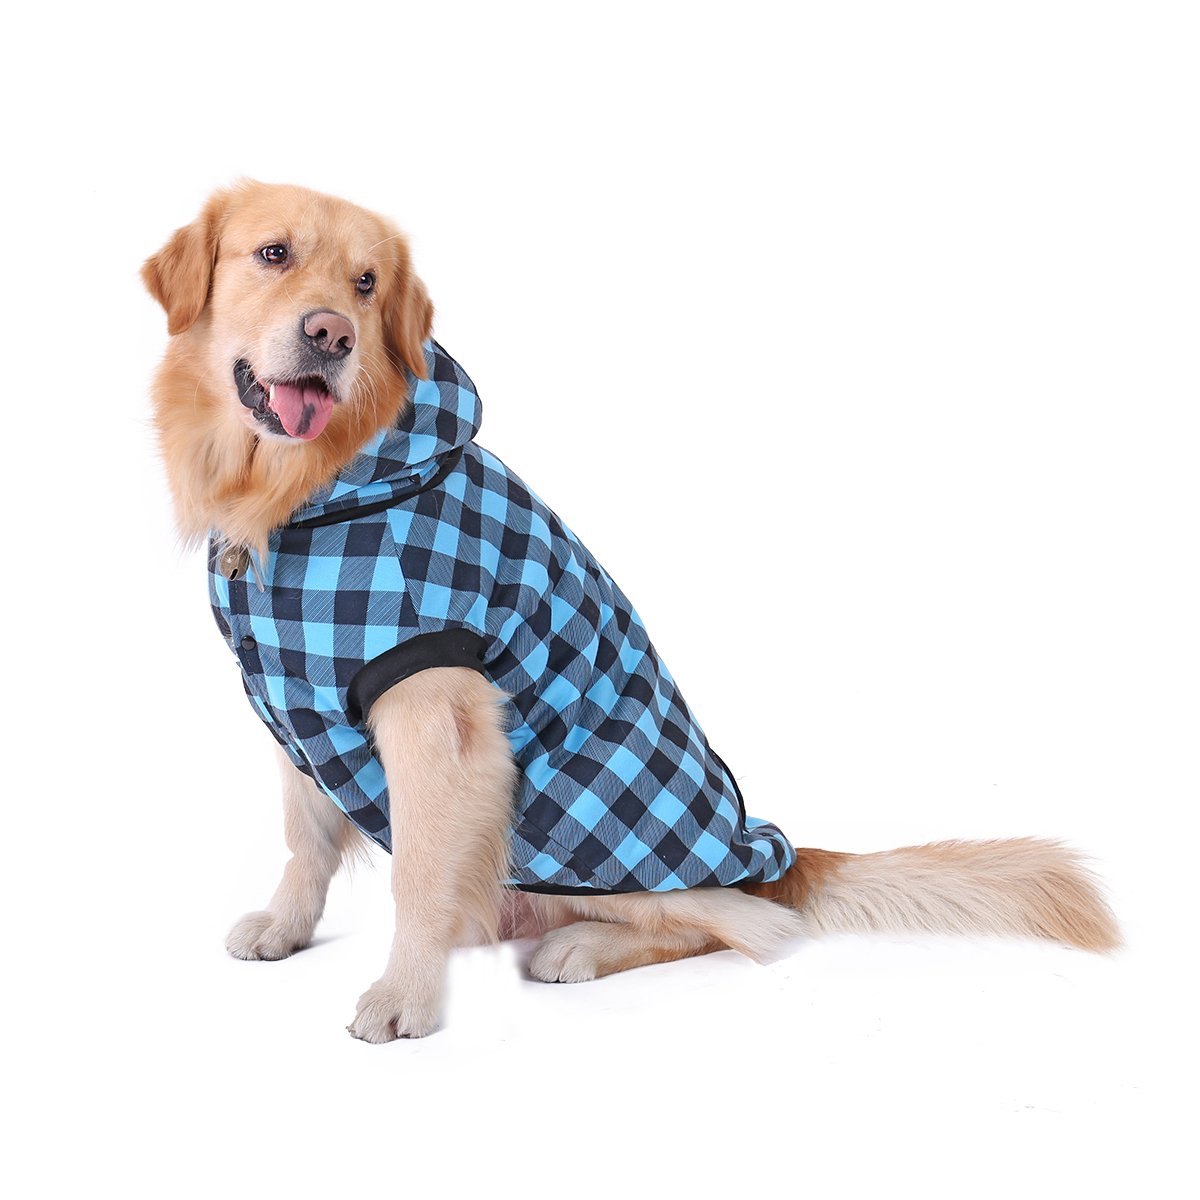 PAWZ Road Dog Plaid Shirt Coat Hoodie Pet Winter Clothes Warm and Soft for Medium and Large Dogs,Upgrade Version Blue 4XL